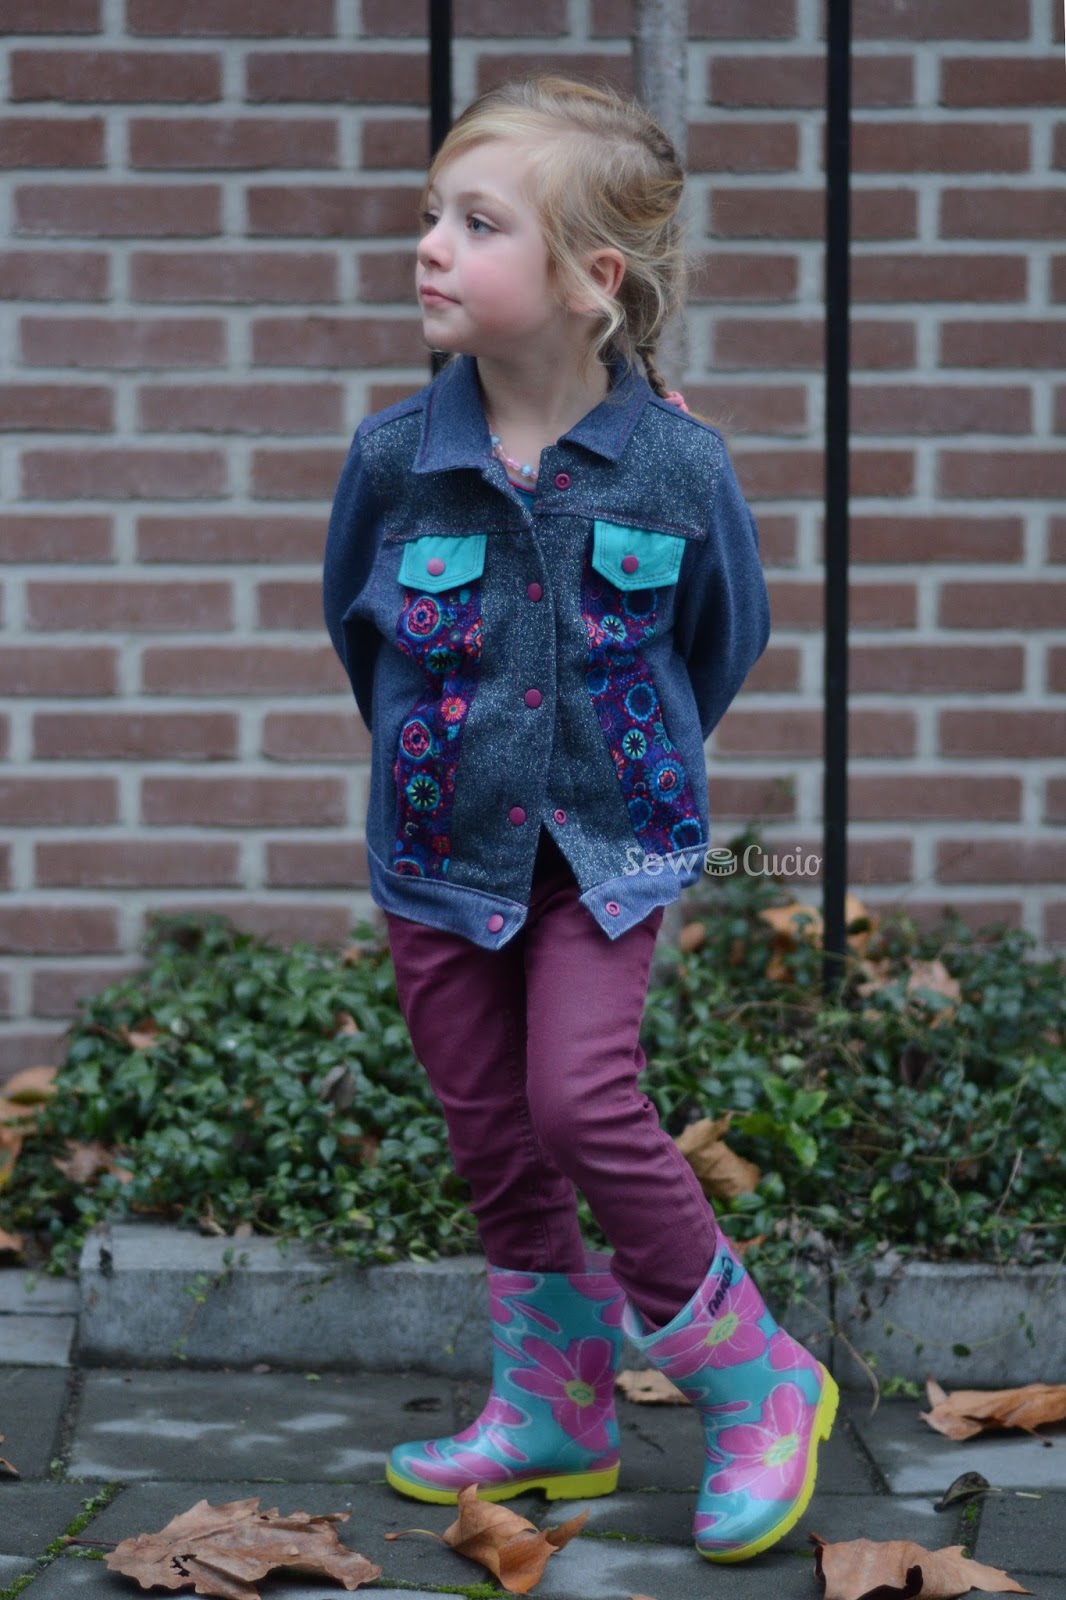 Sew Cucio: One Thimble 17: Big Day Out Jacket